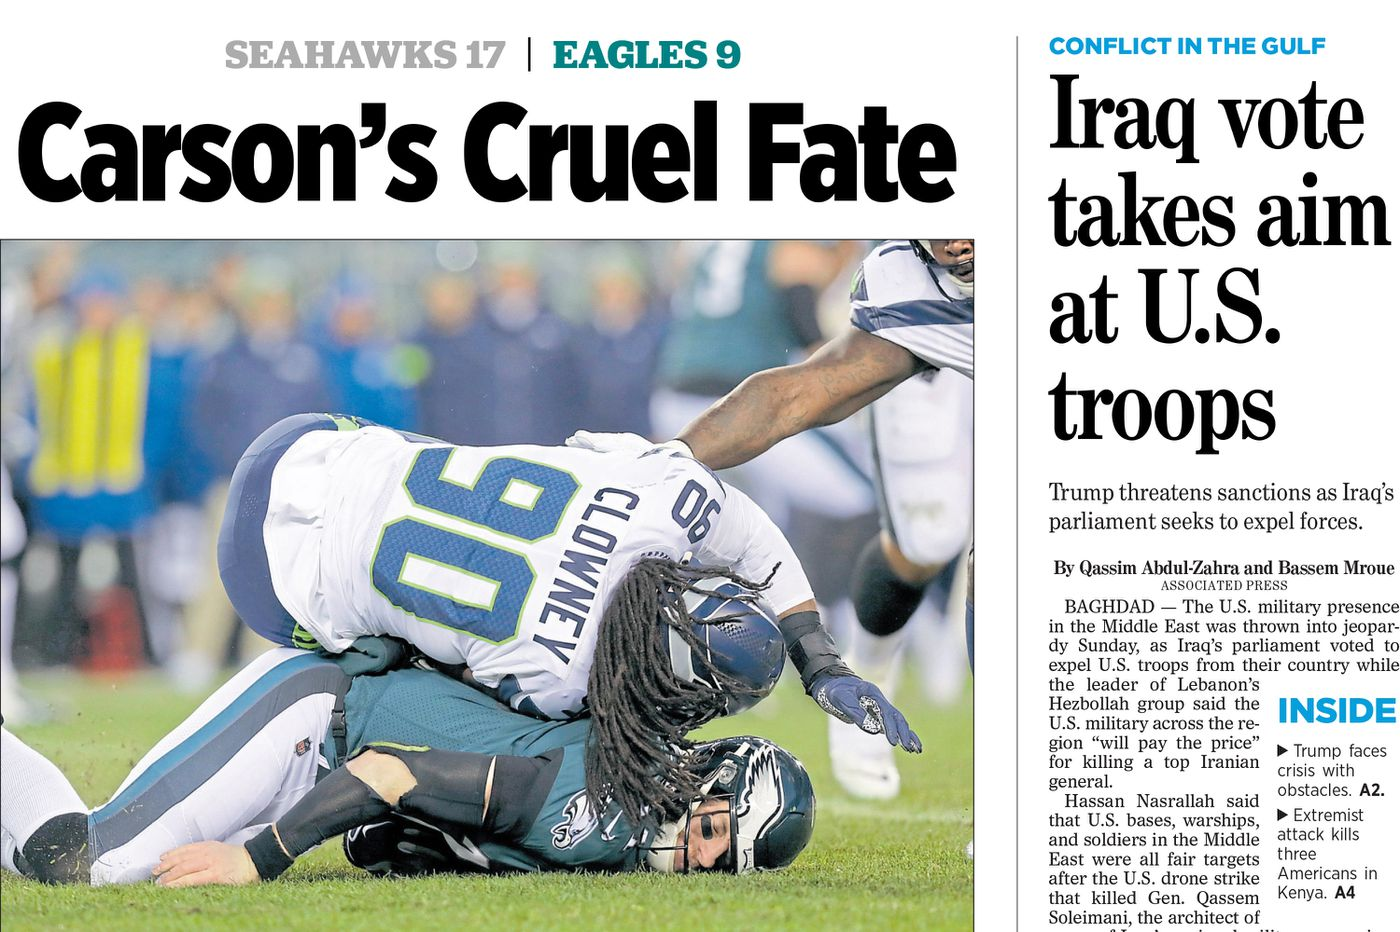 'Carson's Cruel Fate': The Inquirer and Daily News covers on the Eagles' NFL playoffs loss to the Seahawks